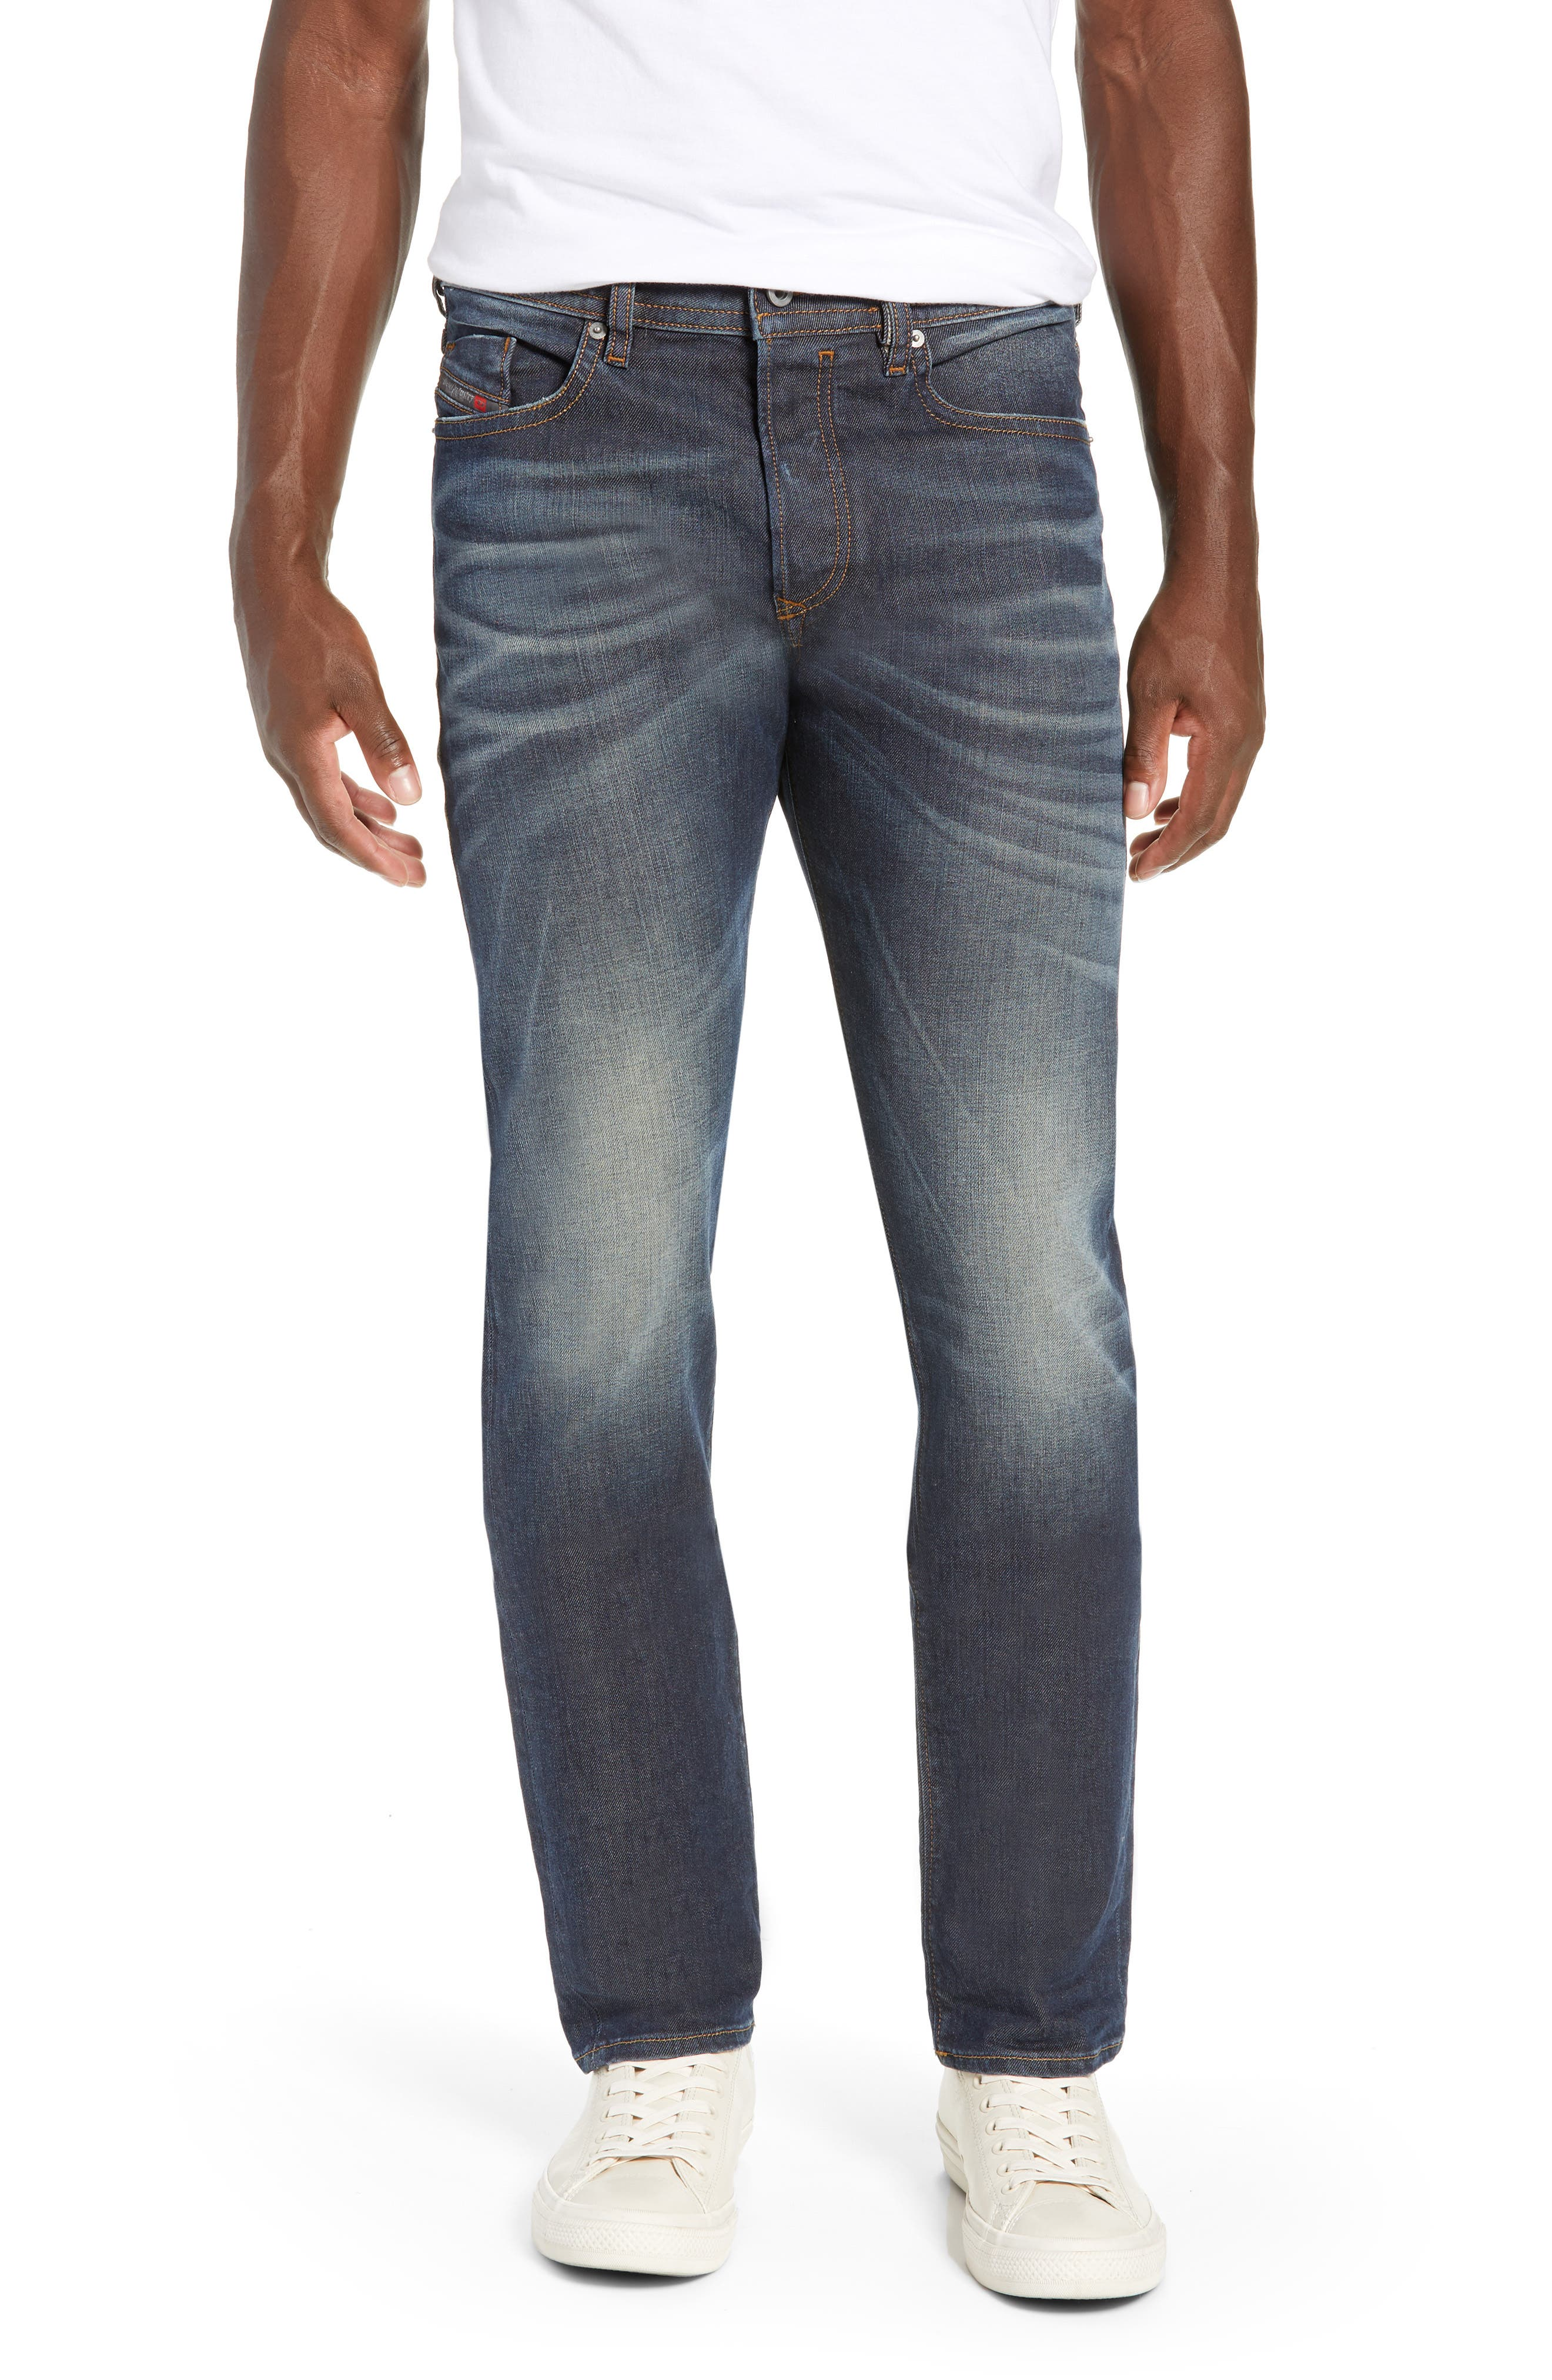 Buster Slim Straight Leg Jeans,                             Main thumbnail 1, color,                             084ZU